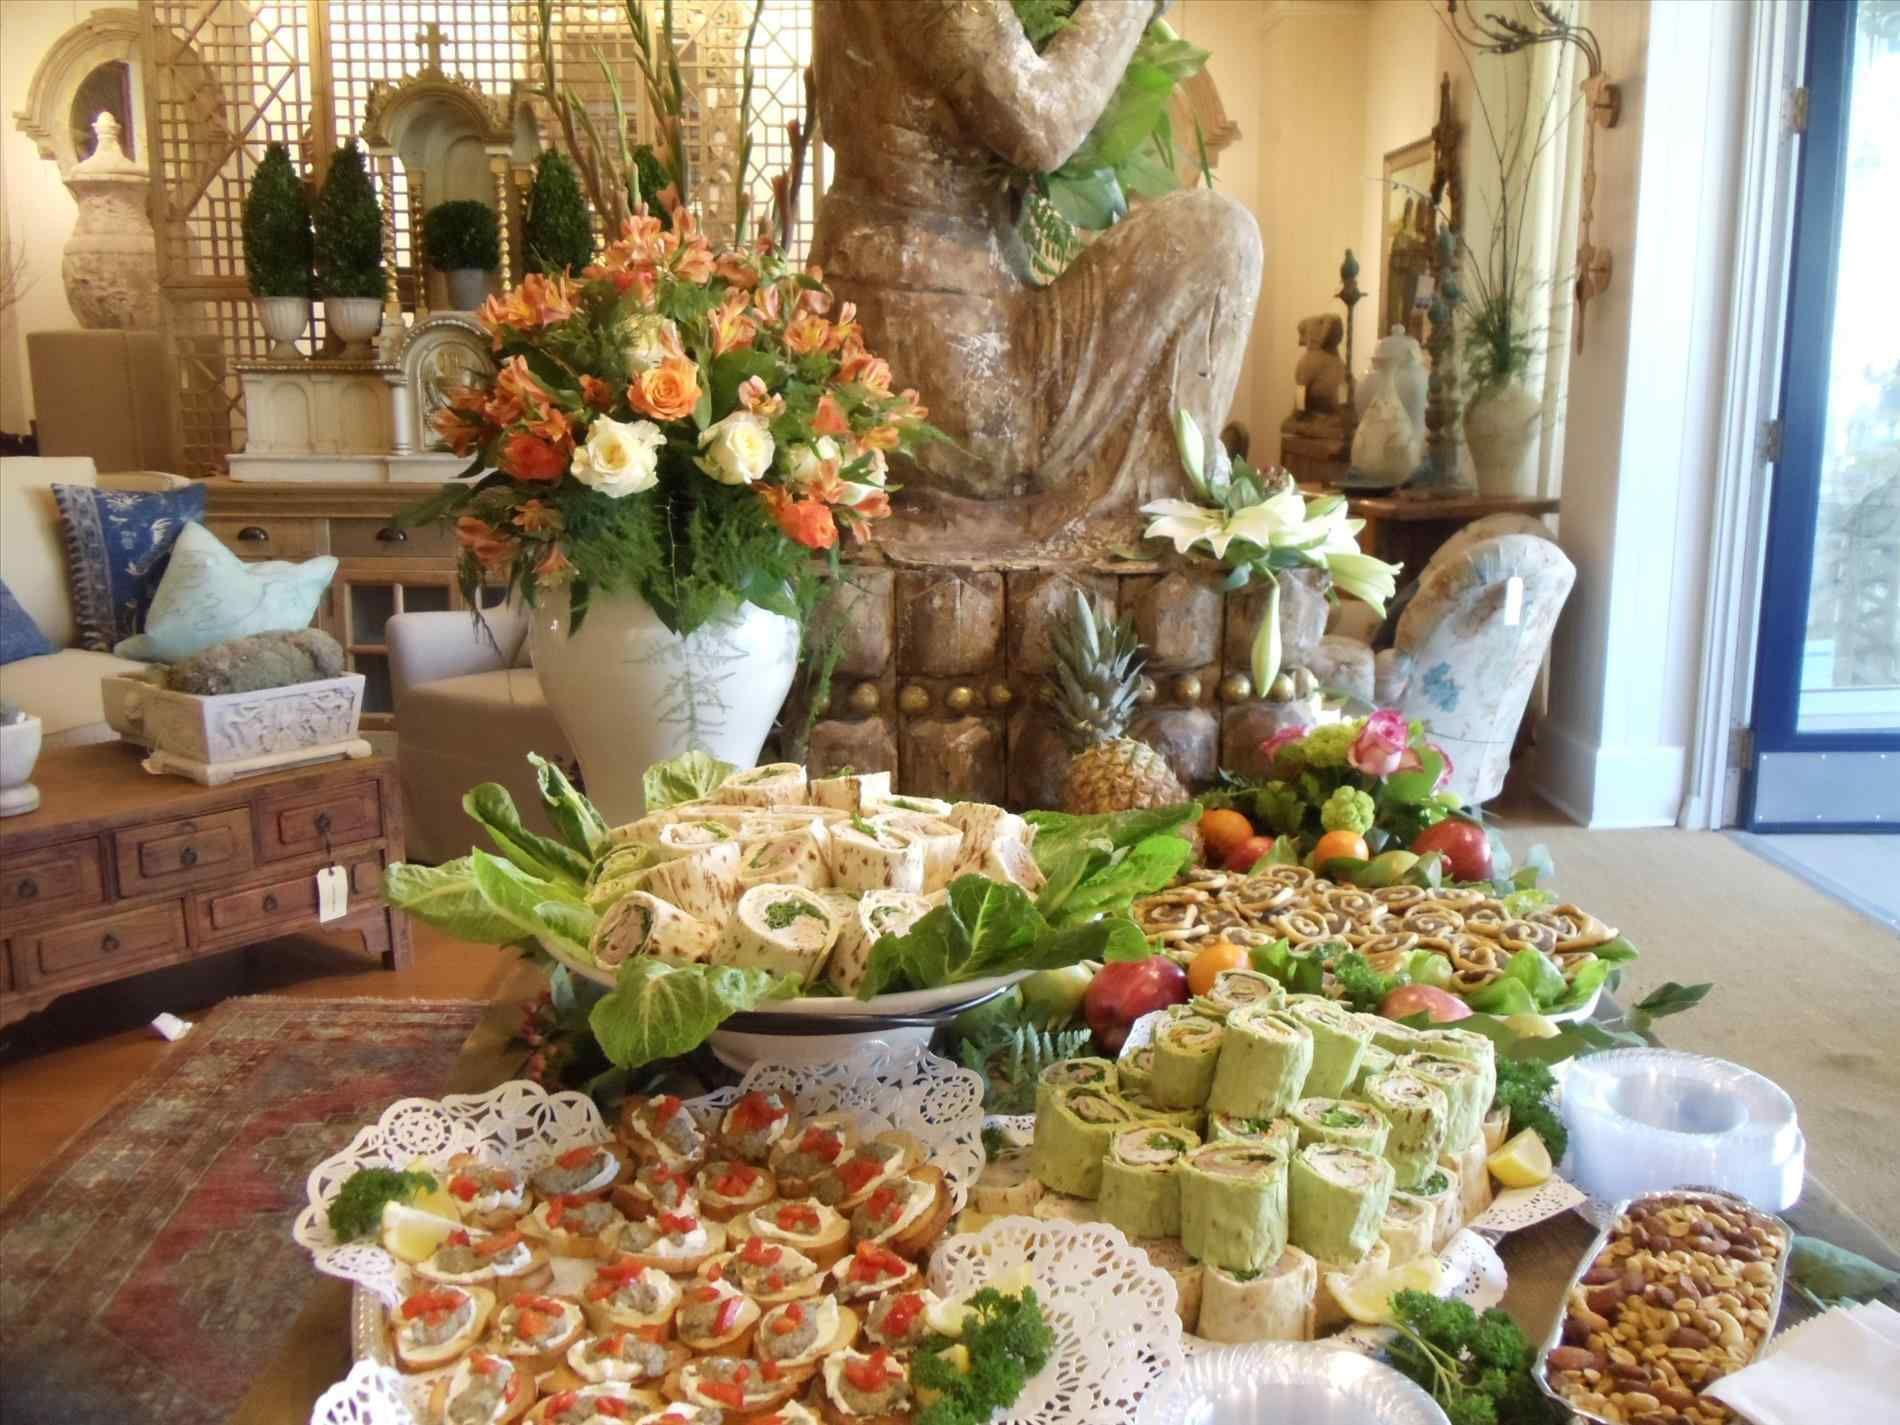 And Asian Vegetables Cuisine At Presentation For Graduation Party Misc Pinterest Food Buffet Table Food Display Buffet Table Decor Food Displays Buffet Table